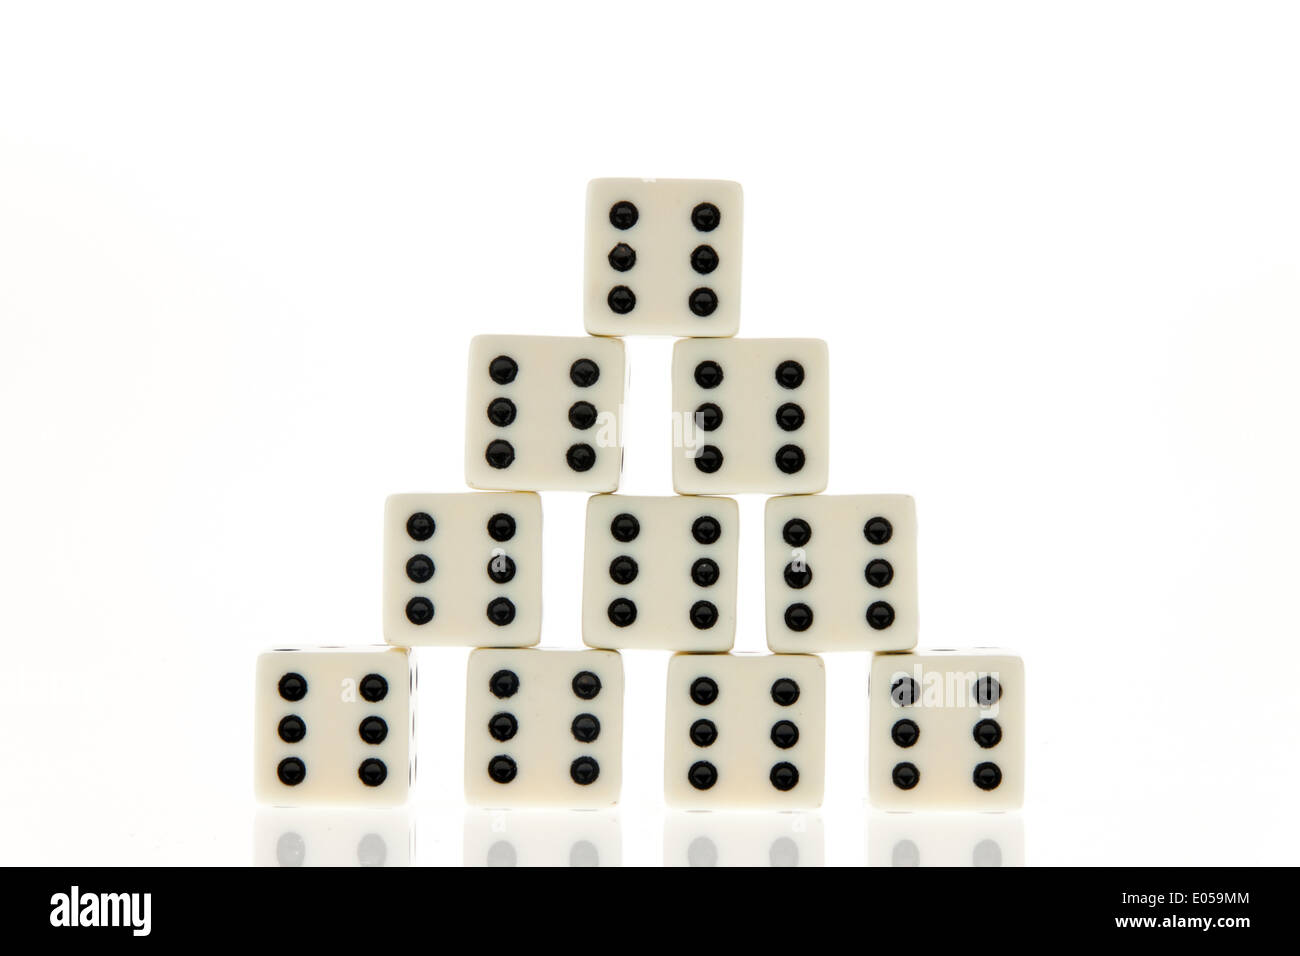 Many cubes of a play. Sechser. Luck and success in the play., Viele Wuerfel eines Spieles. Sechser. Glueck und Erfolg im Spiel. - Stock Image